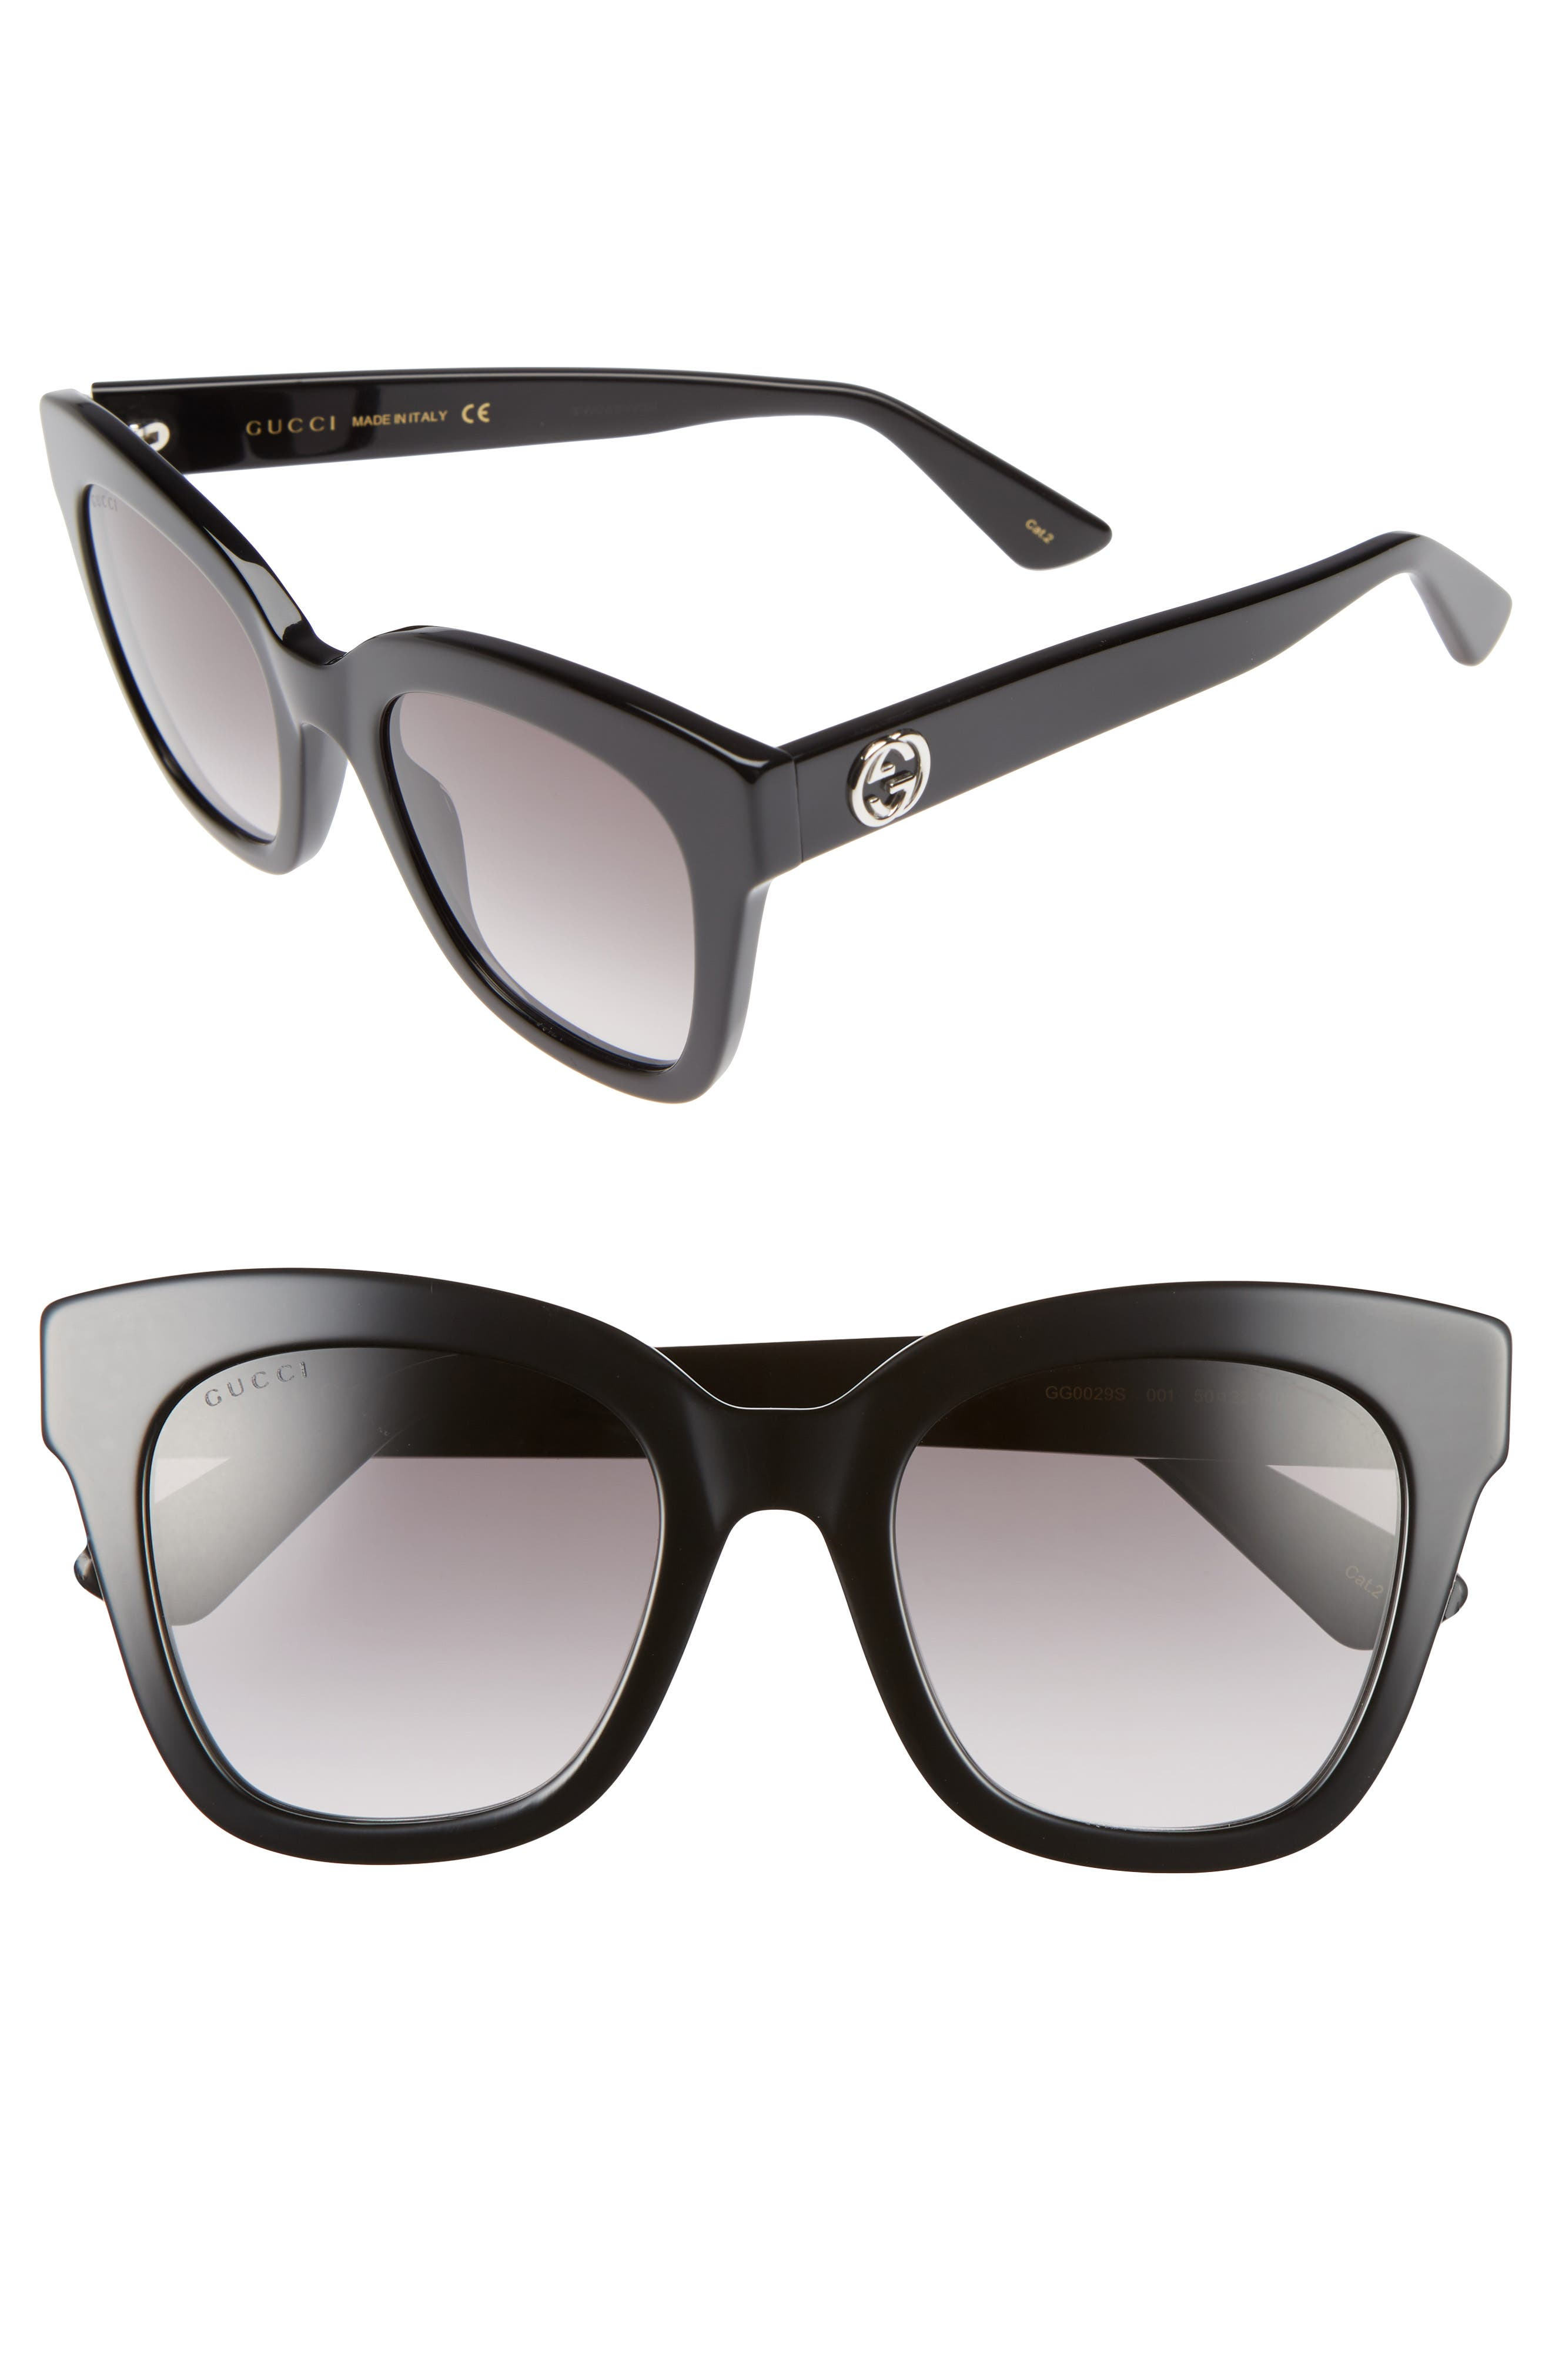 50mm Cat Eye Sunglasses,                             Main thumbnail 1, color,                             001